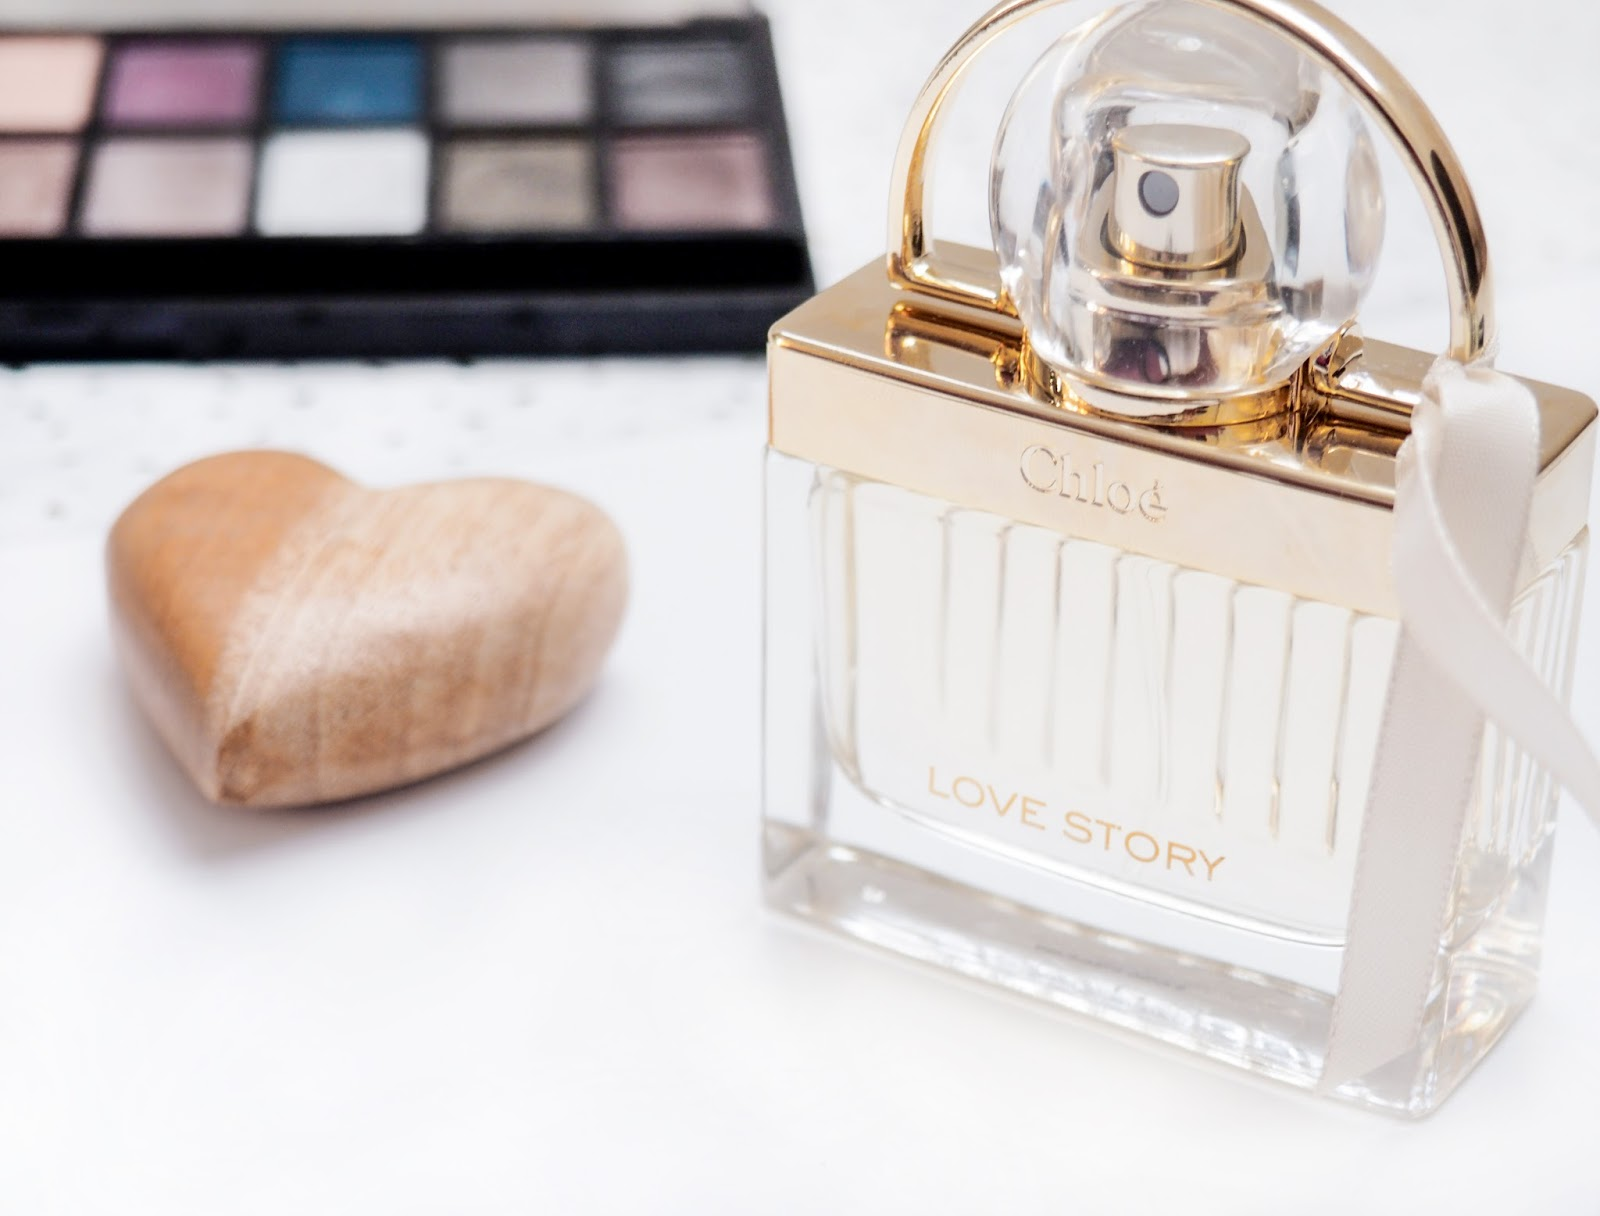 February Beauty Favourites Chloe Love Story